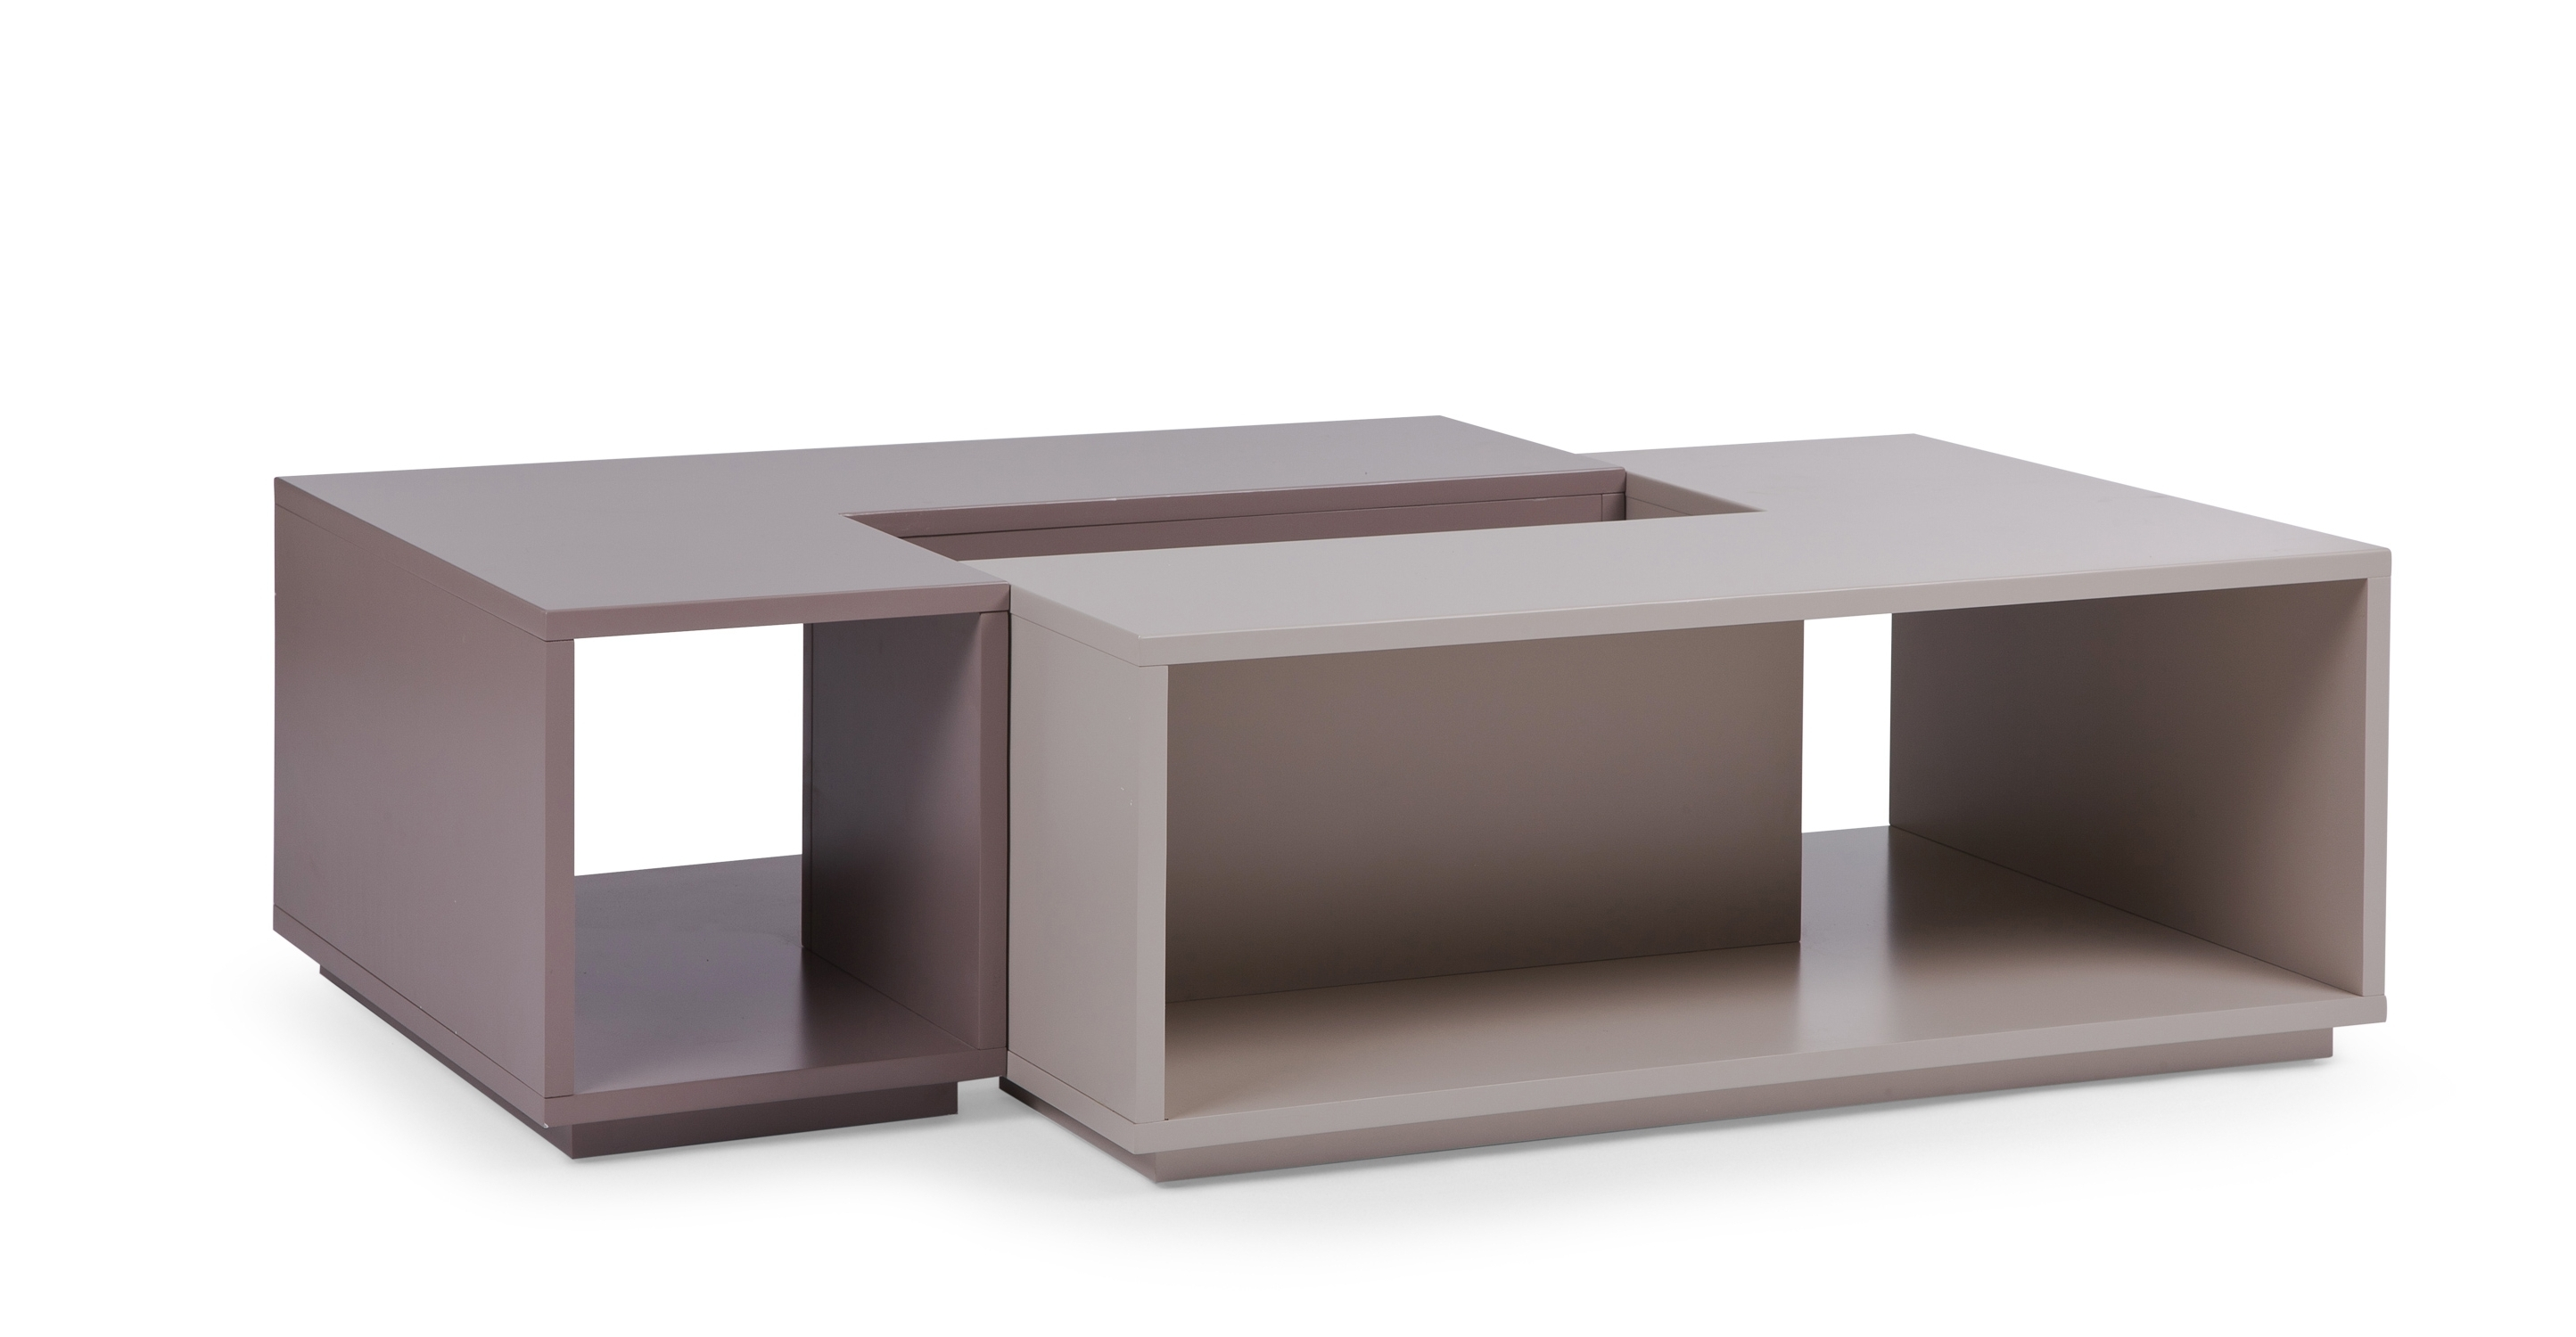 Well Liked Modular Coffee Tables With Regard To Fabulous Modular Coffee Table With Modular Coffee Table Design (View 6 of 20)